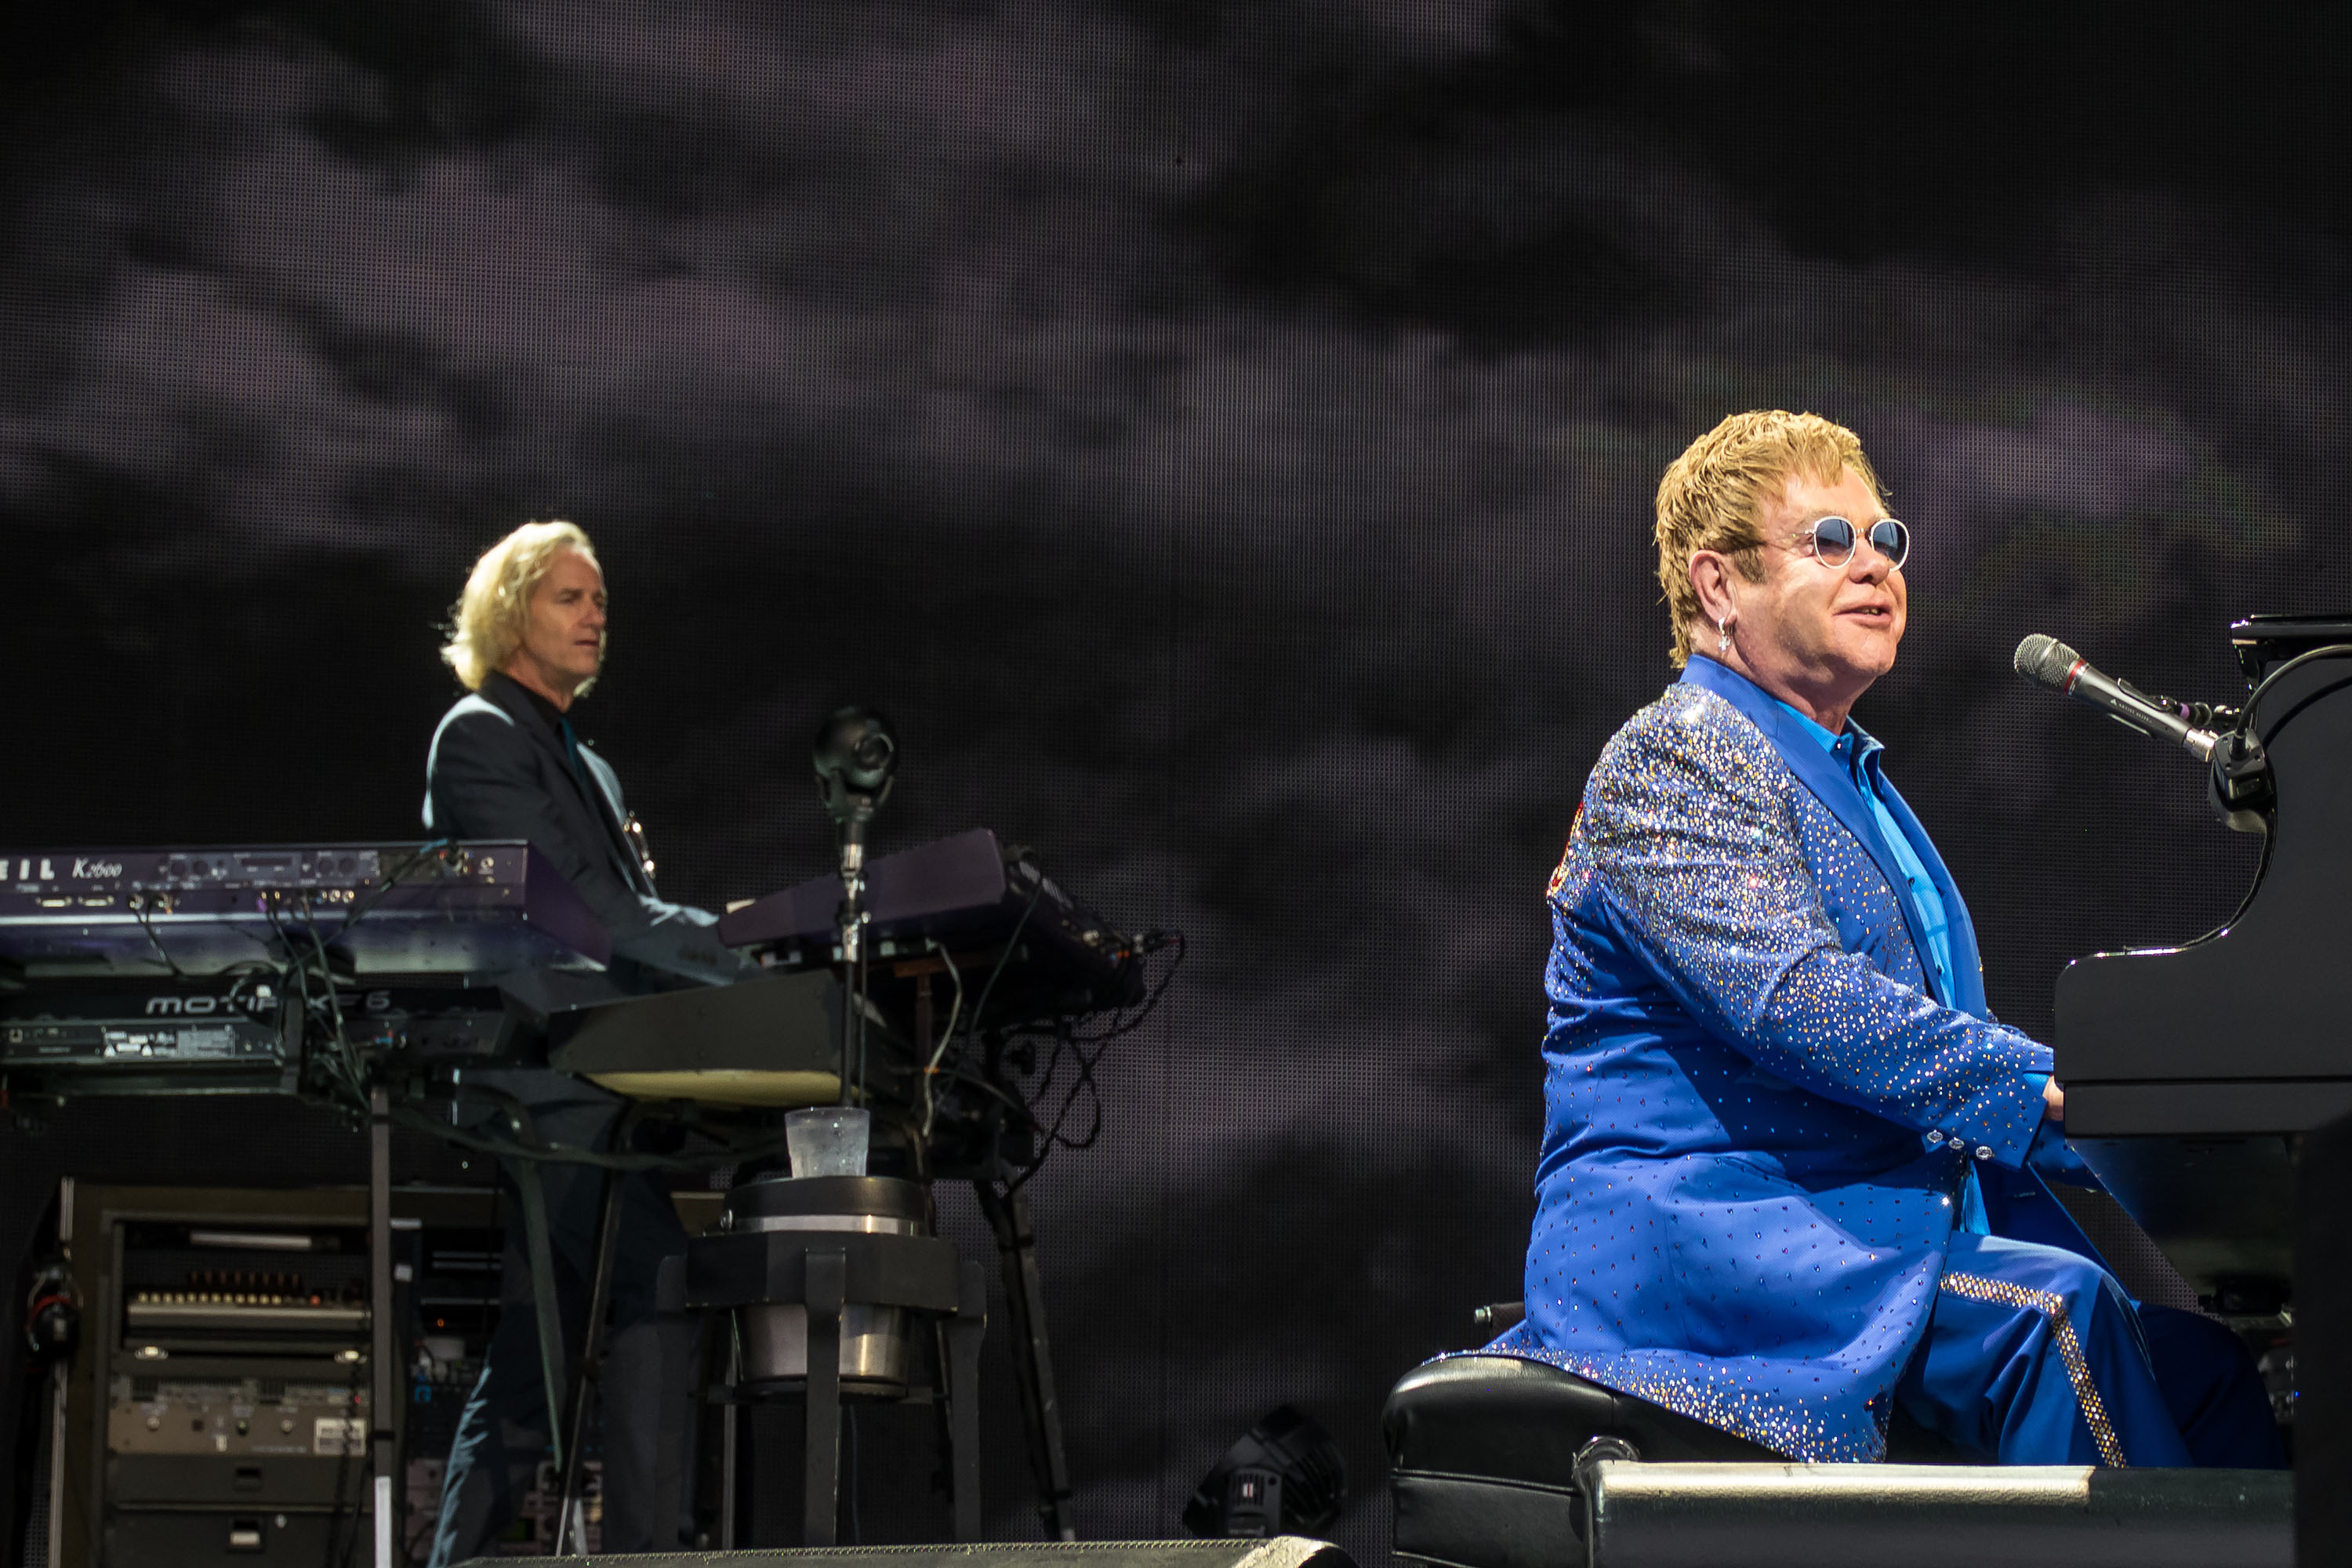 Elton John Performs At Lincoln County Show Grounds